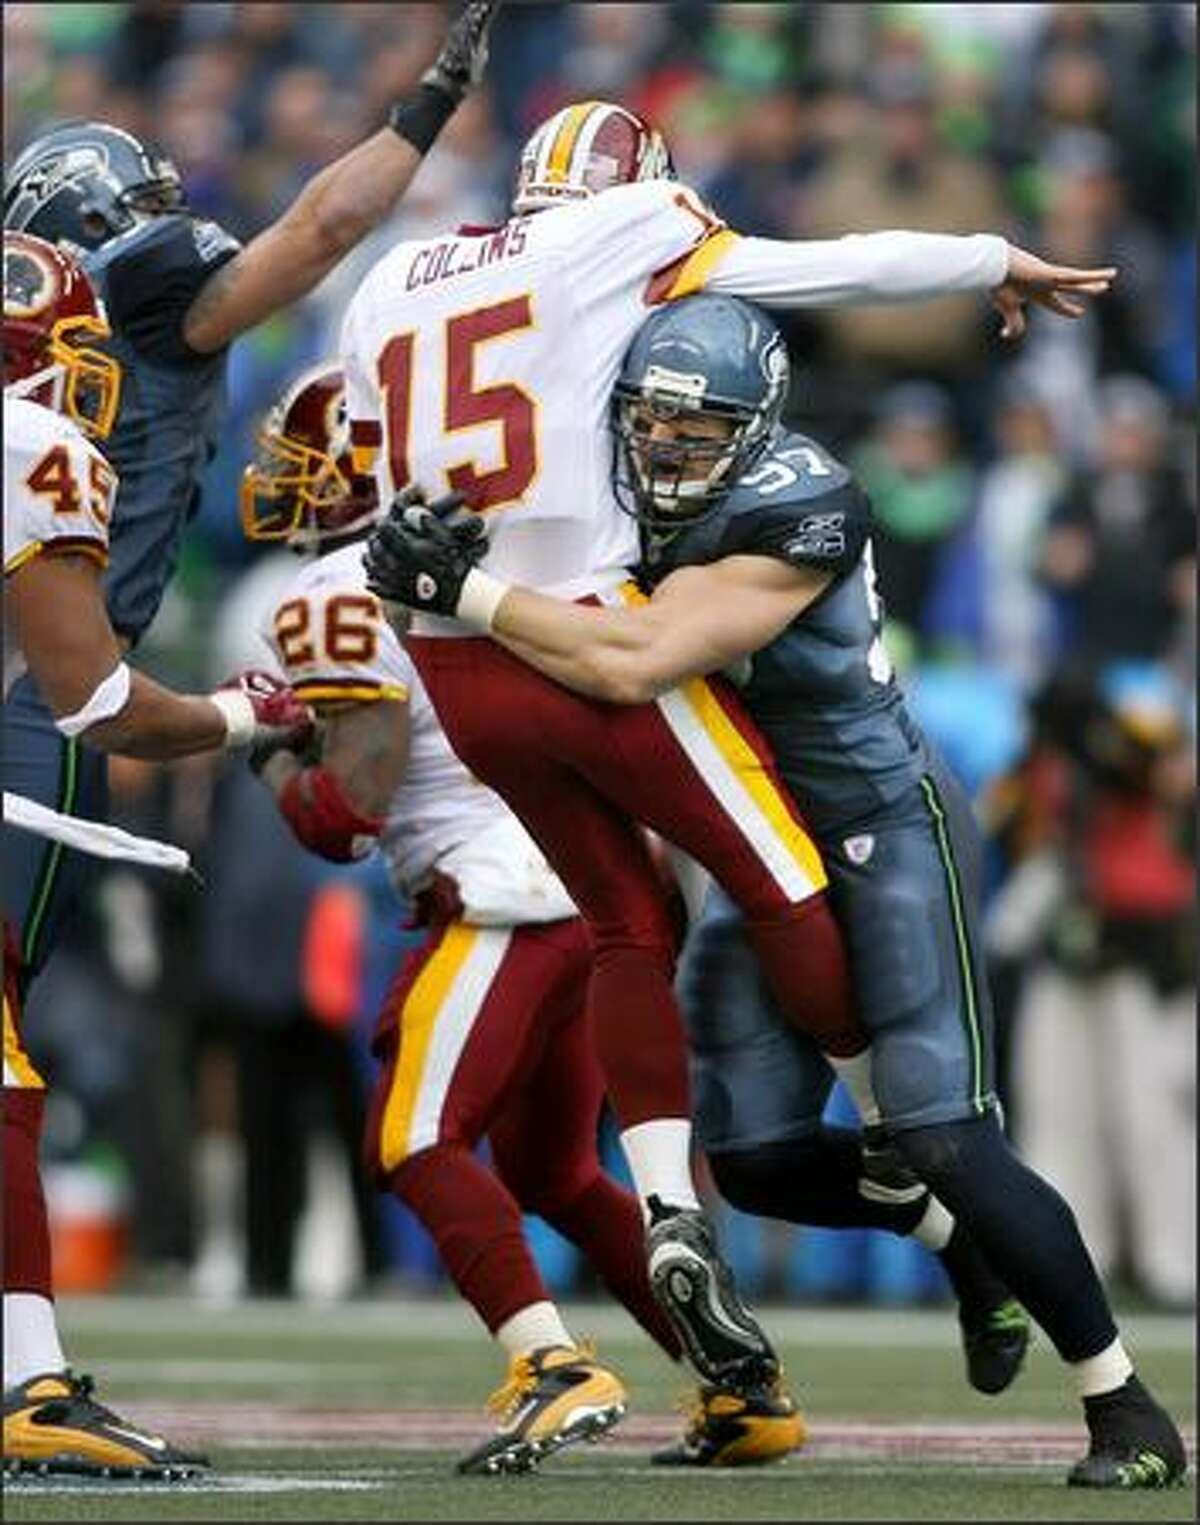 Redskins quarterback Todd Collins releases an incomplete pass just before being hit hard by Seahawks defensive end Patrick Kerney in the first quarter.